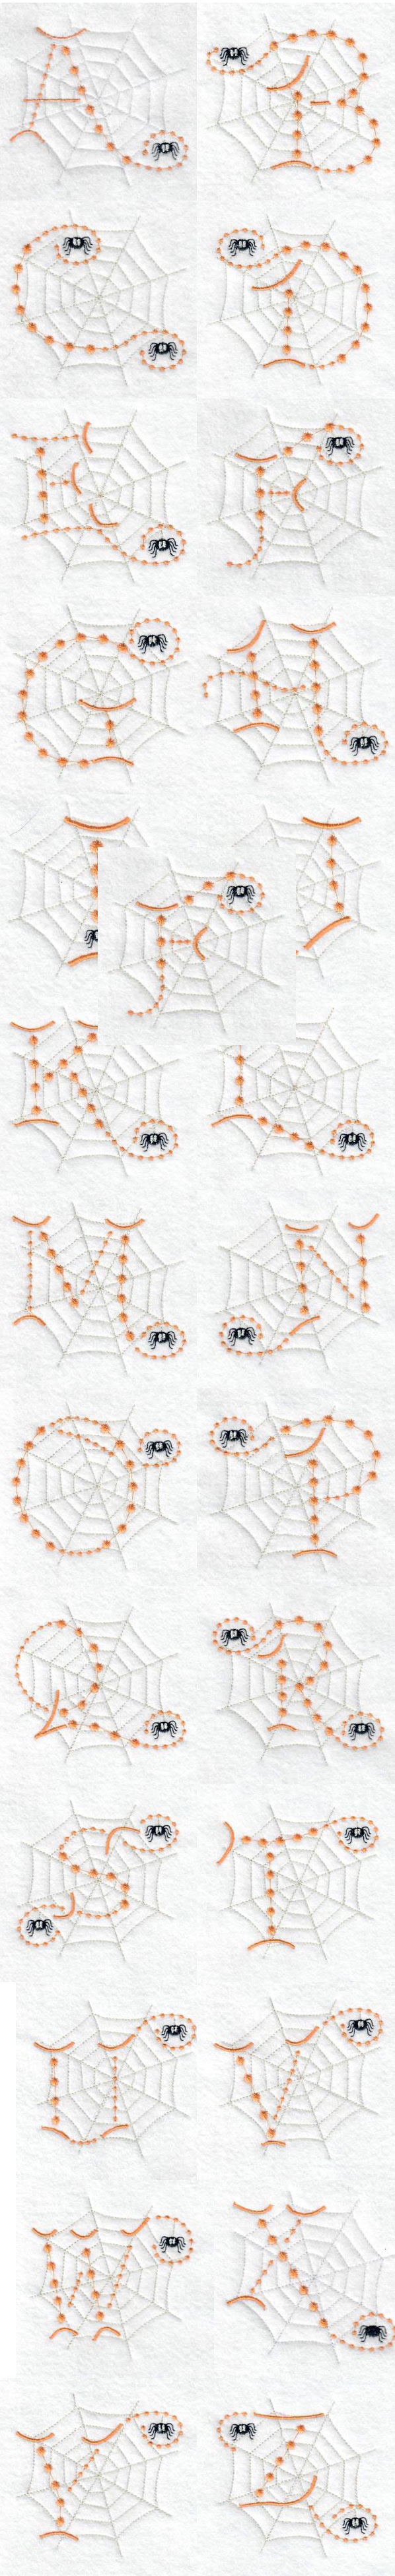 Cute Candlewick Spider Alphabet Embroidery Machine Design Details